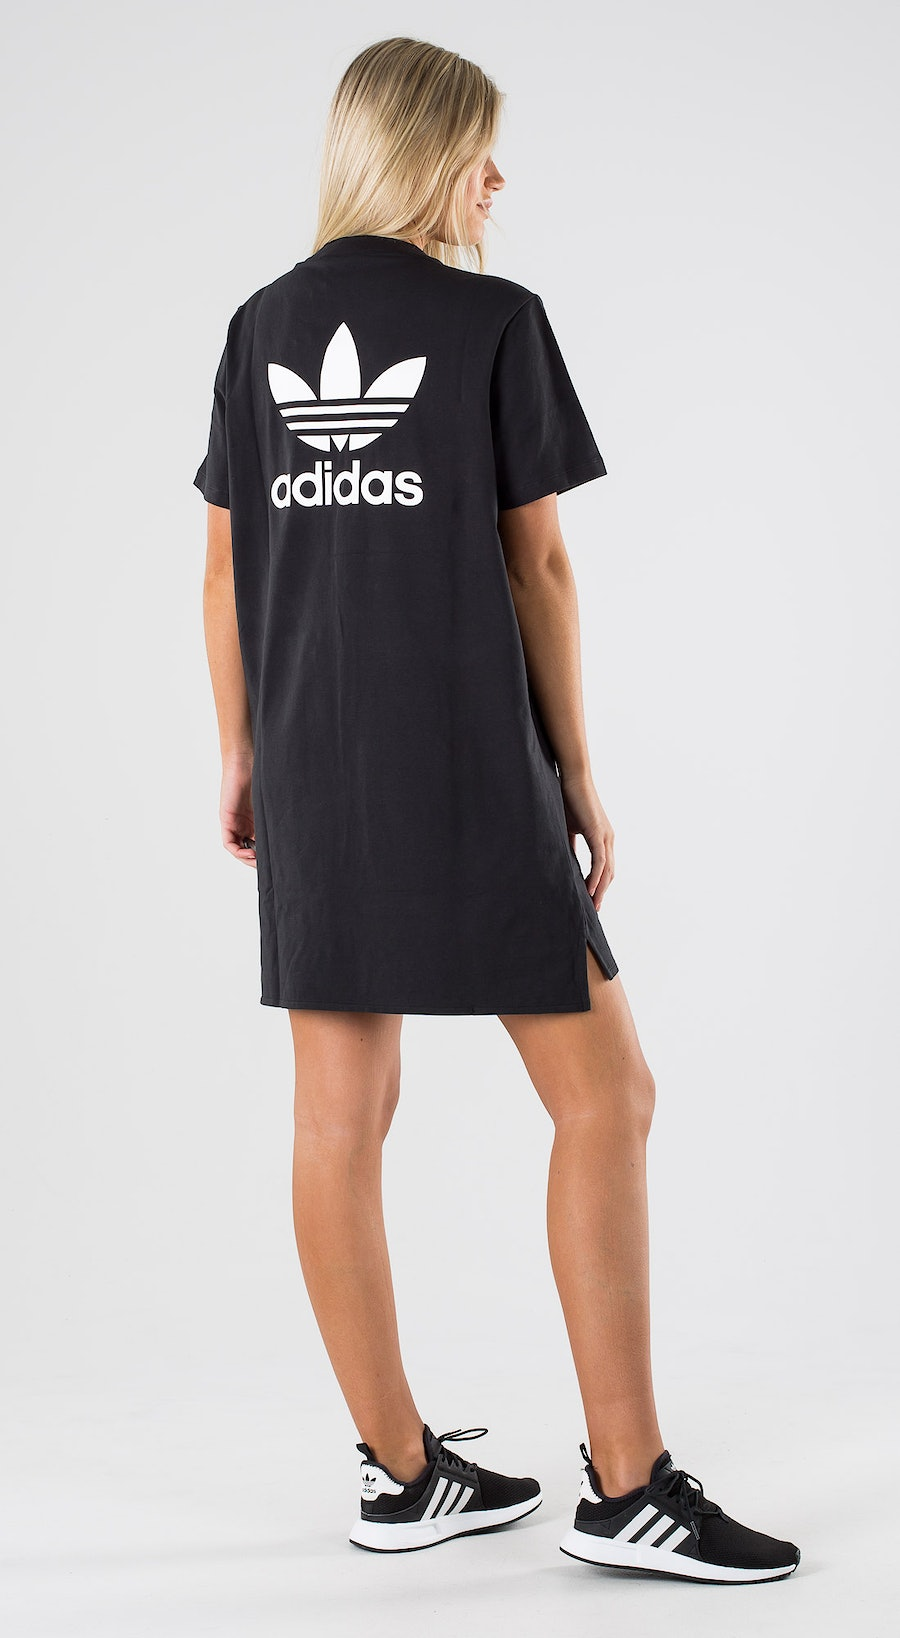 Adidas Originals Trefoil Dress Black White Outfit Multi